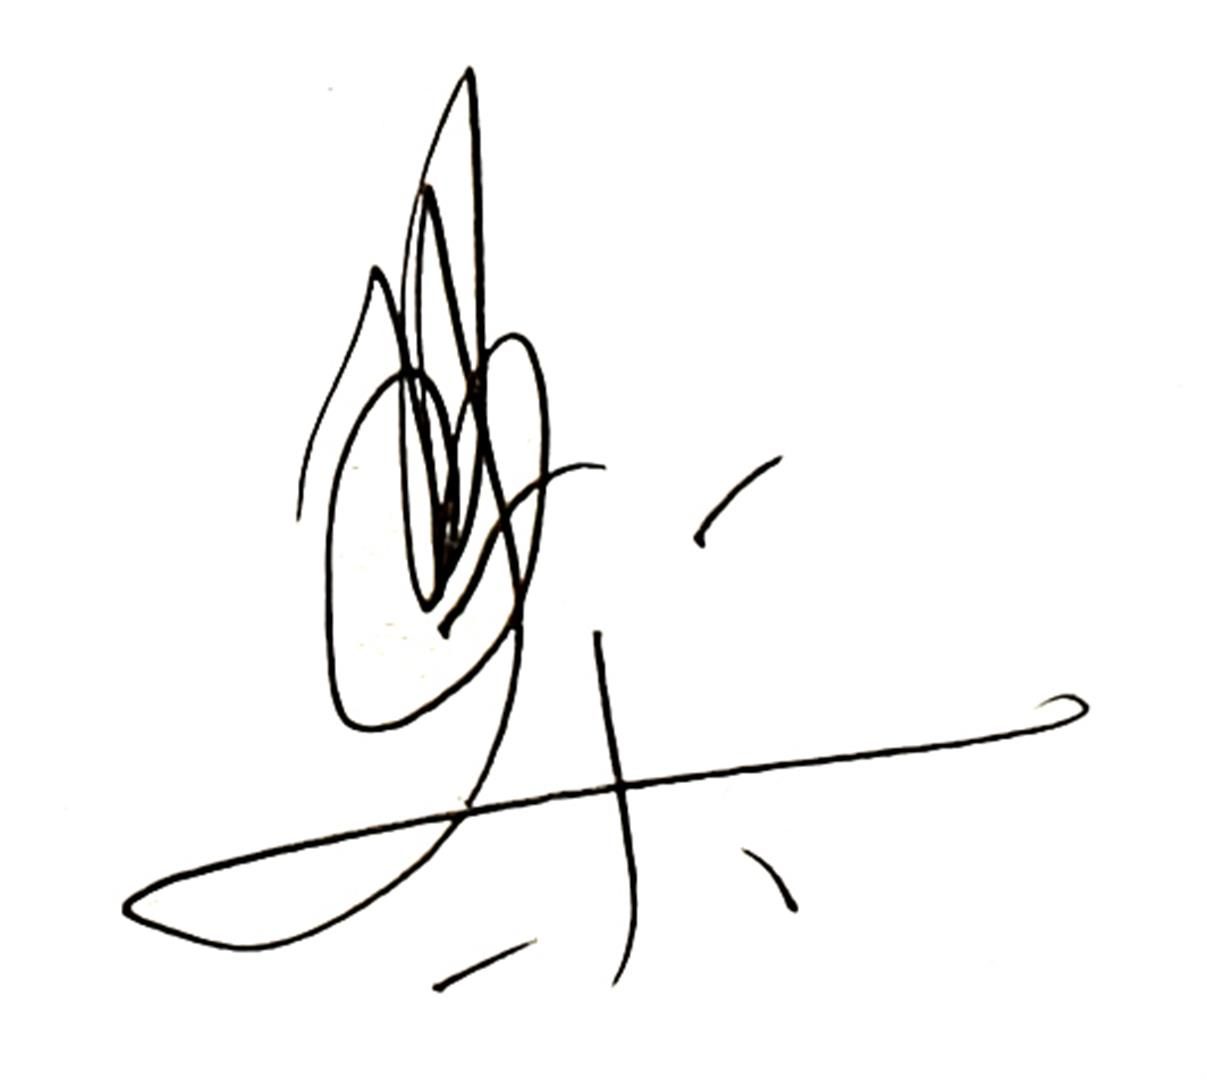 Phillipe Pissier Signature